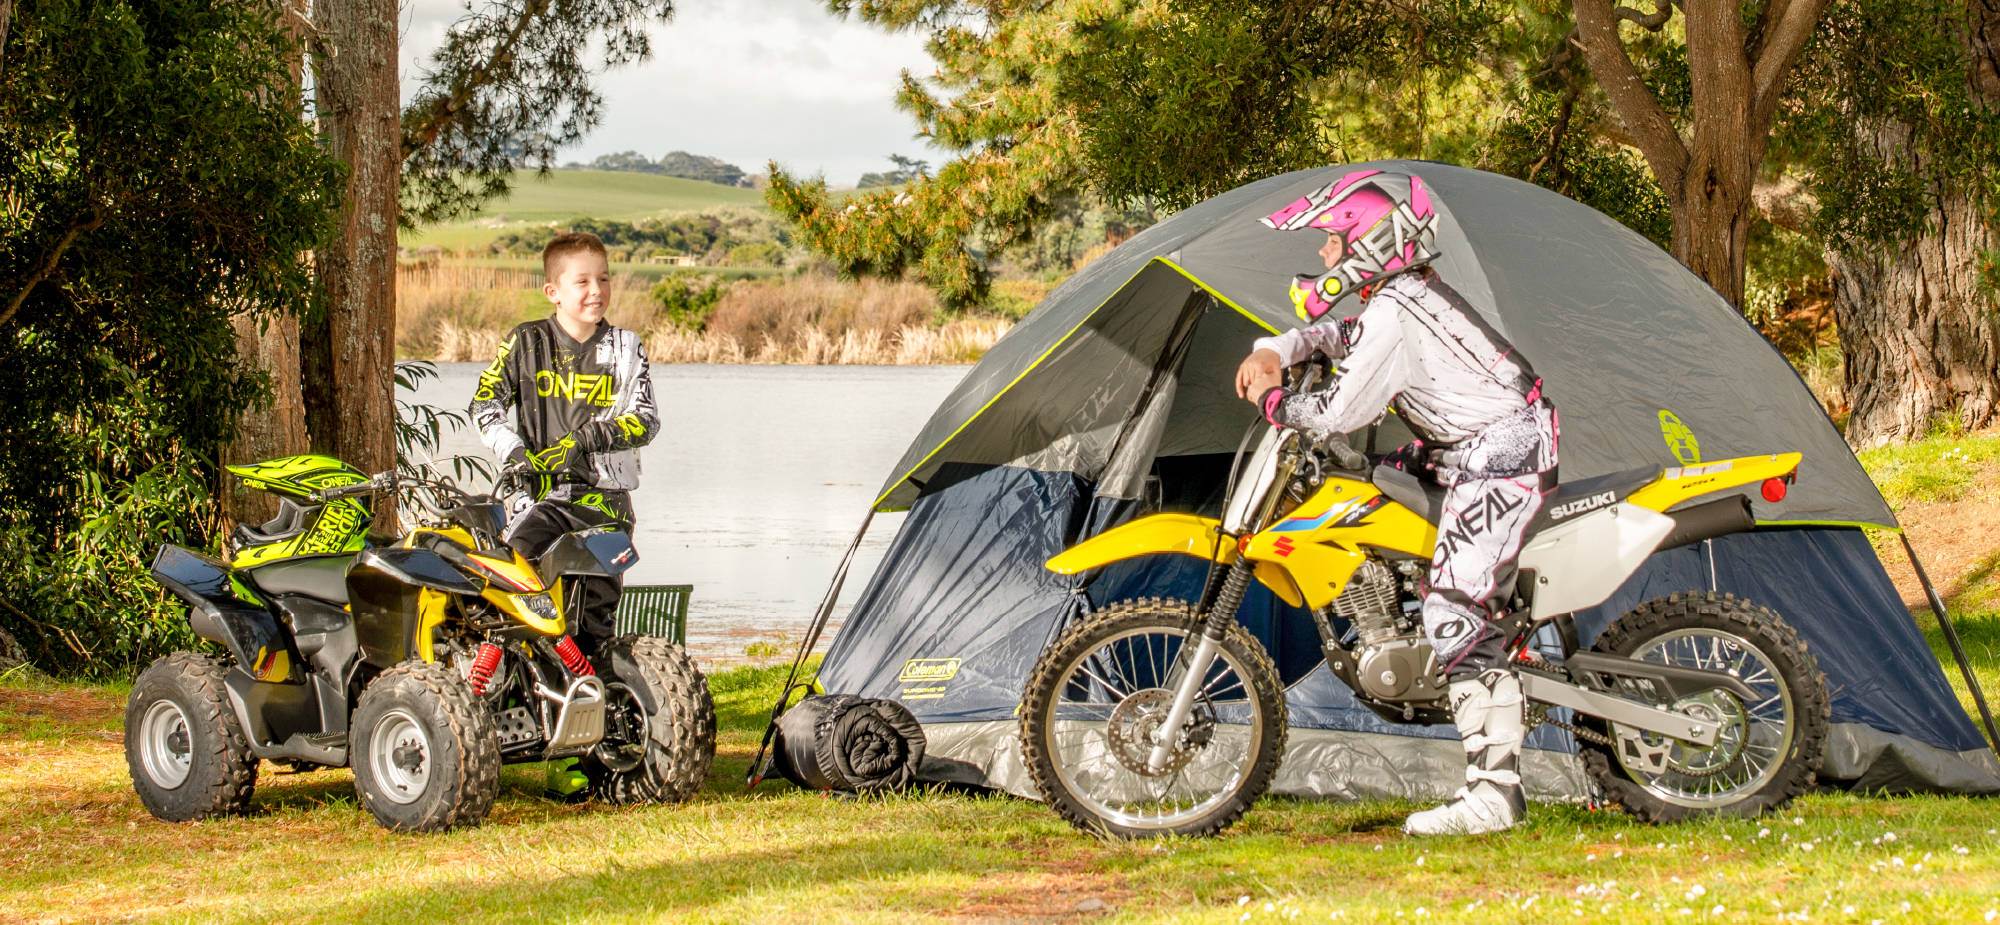 Suzuki Camping Deal Free Tent and Sleeping Bag